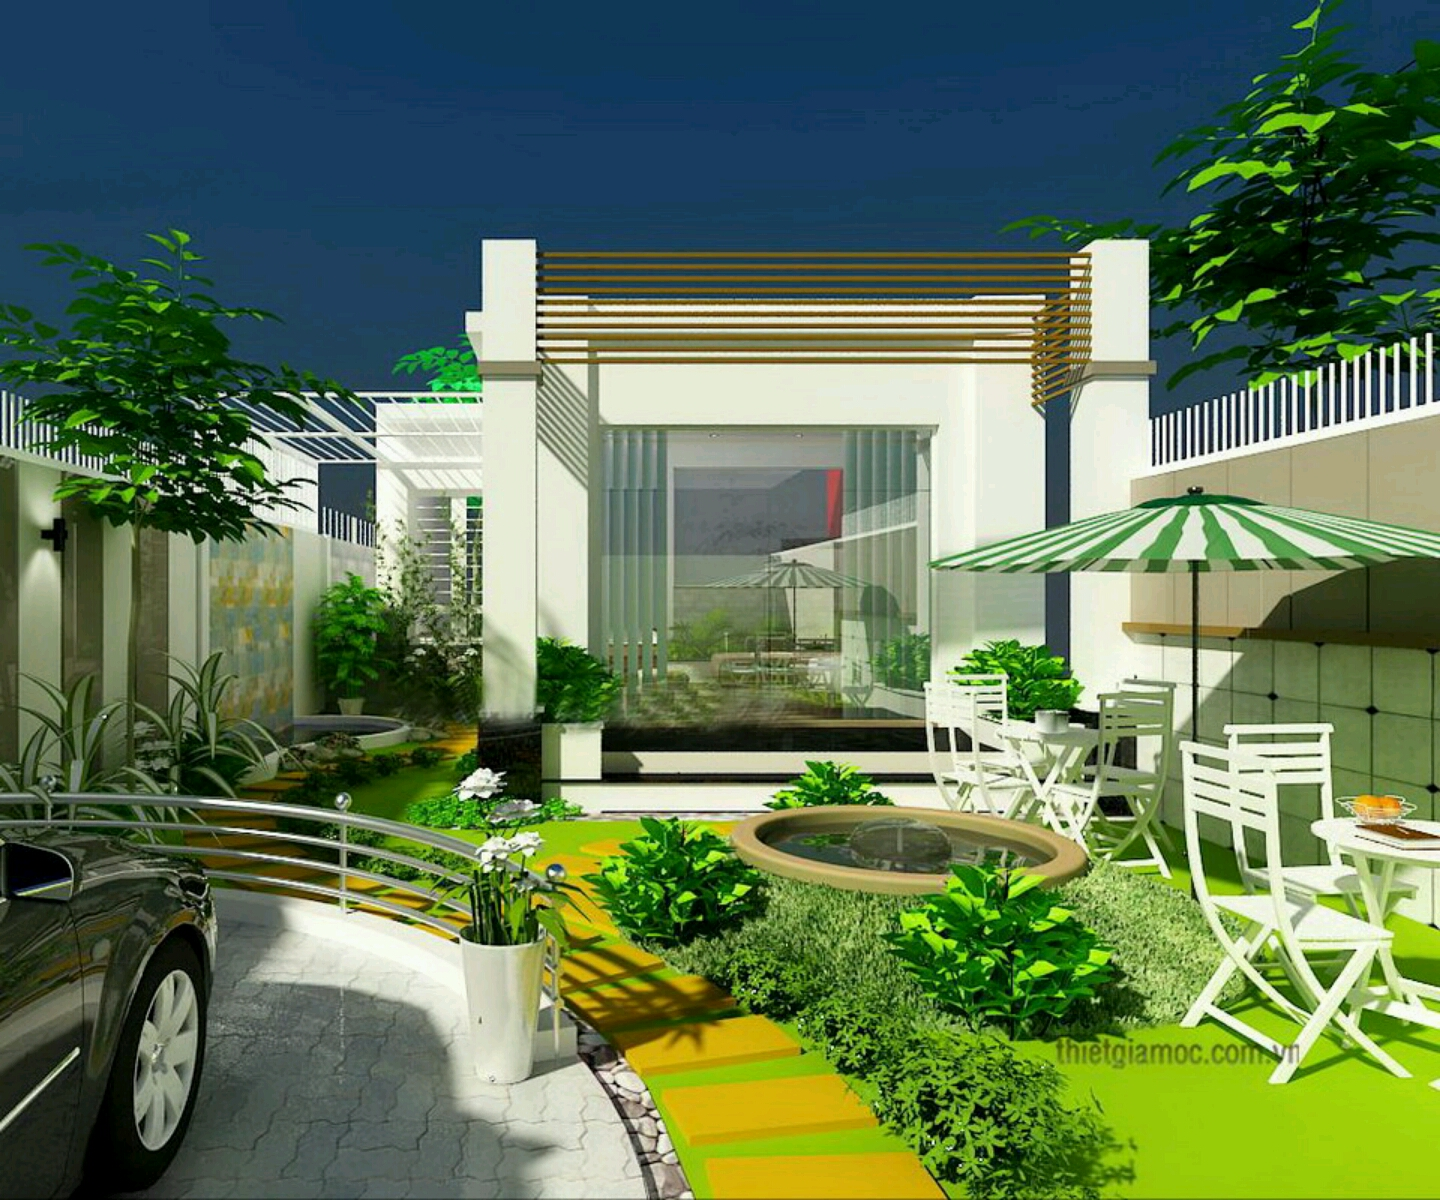 Modern homes beautiful garden designs ideas new home for Home design ideas videos